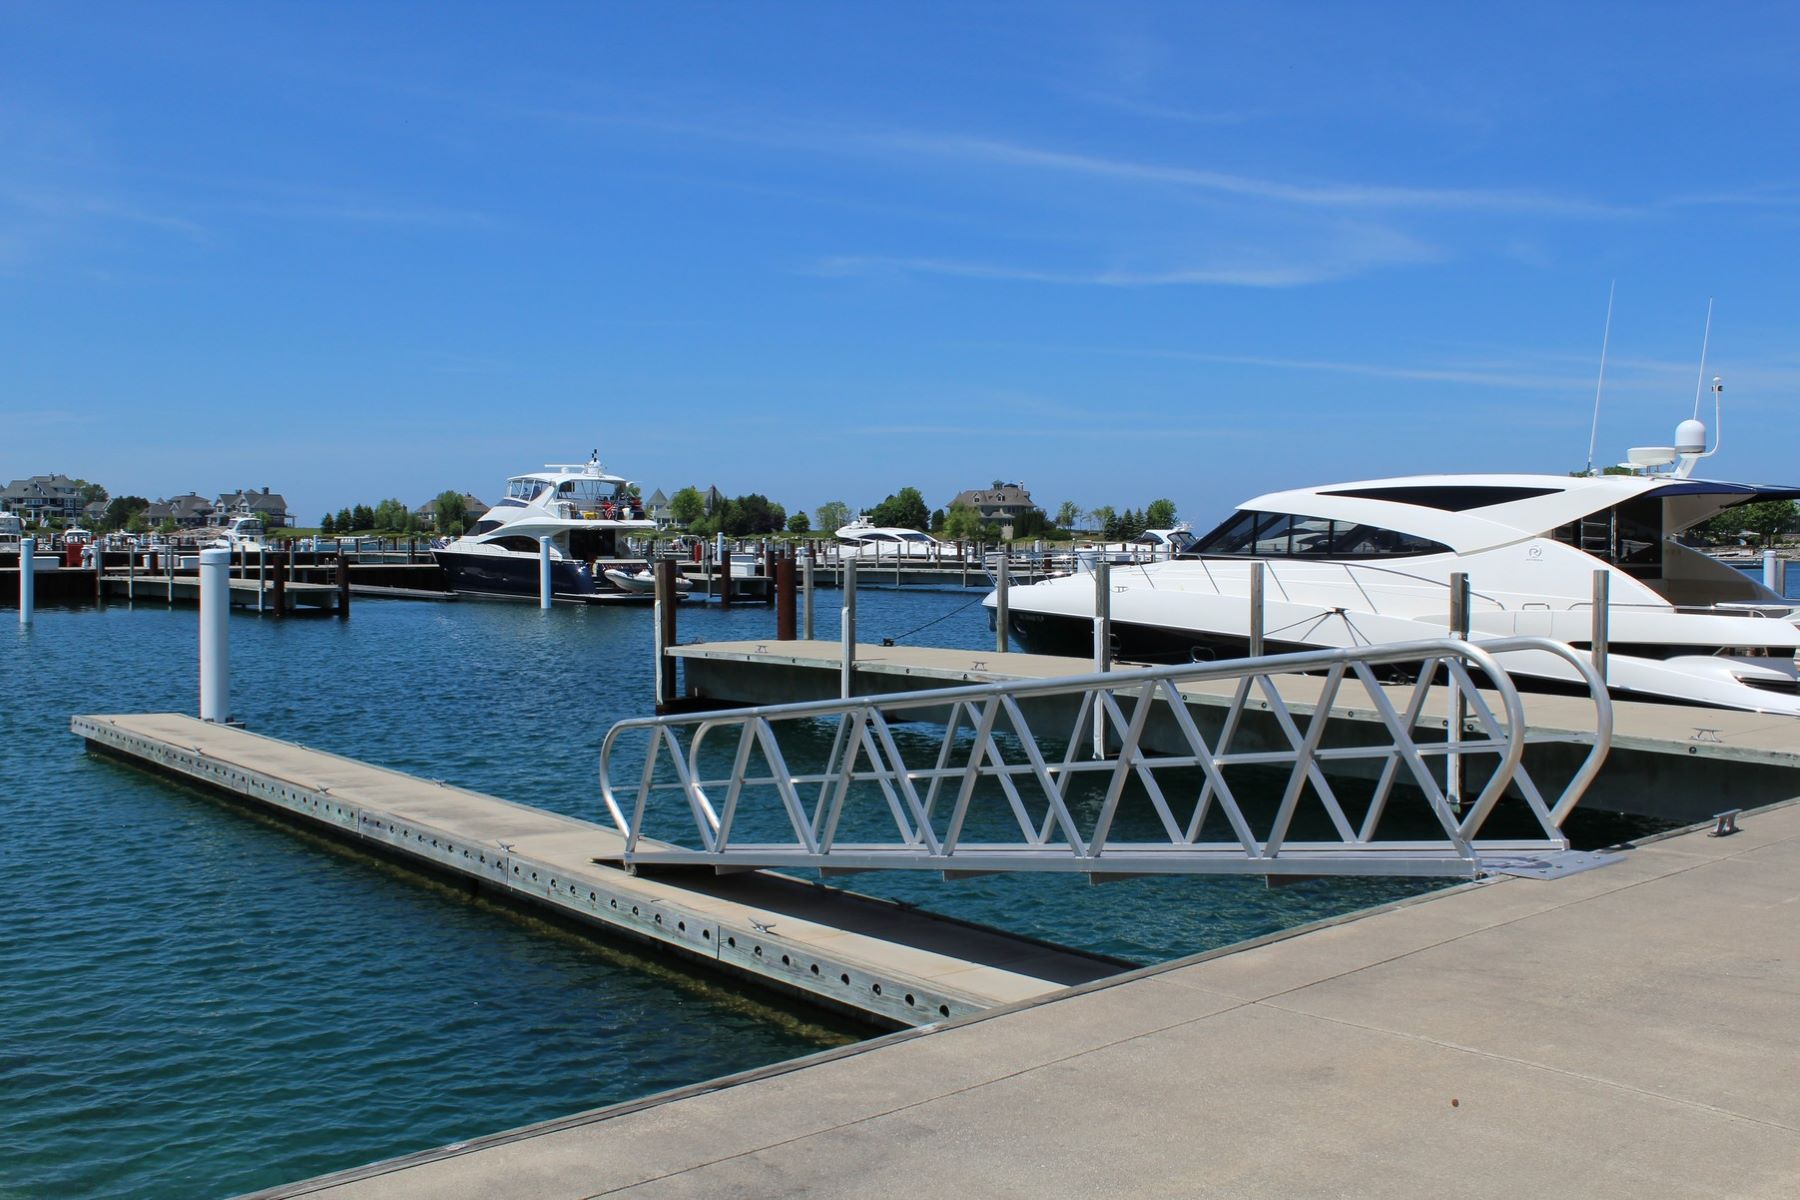 for Sale at Yacht Dock 99 4300 Vista Drive, Unit 99 Bay Harbor, Michigan, 49770 United States